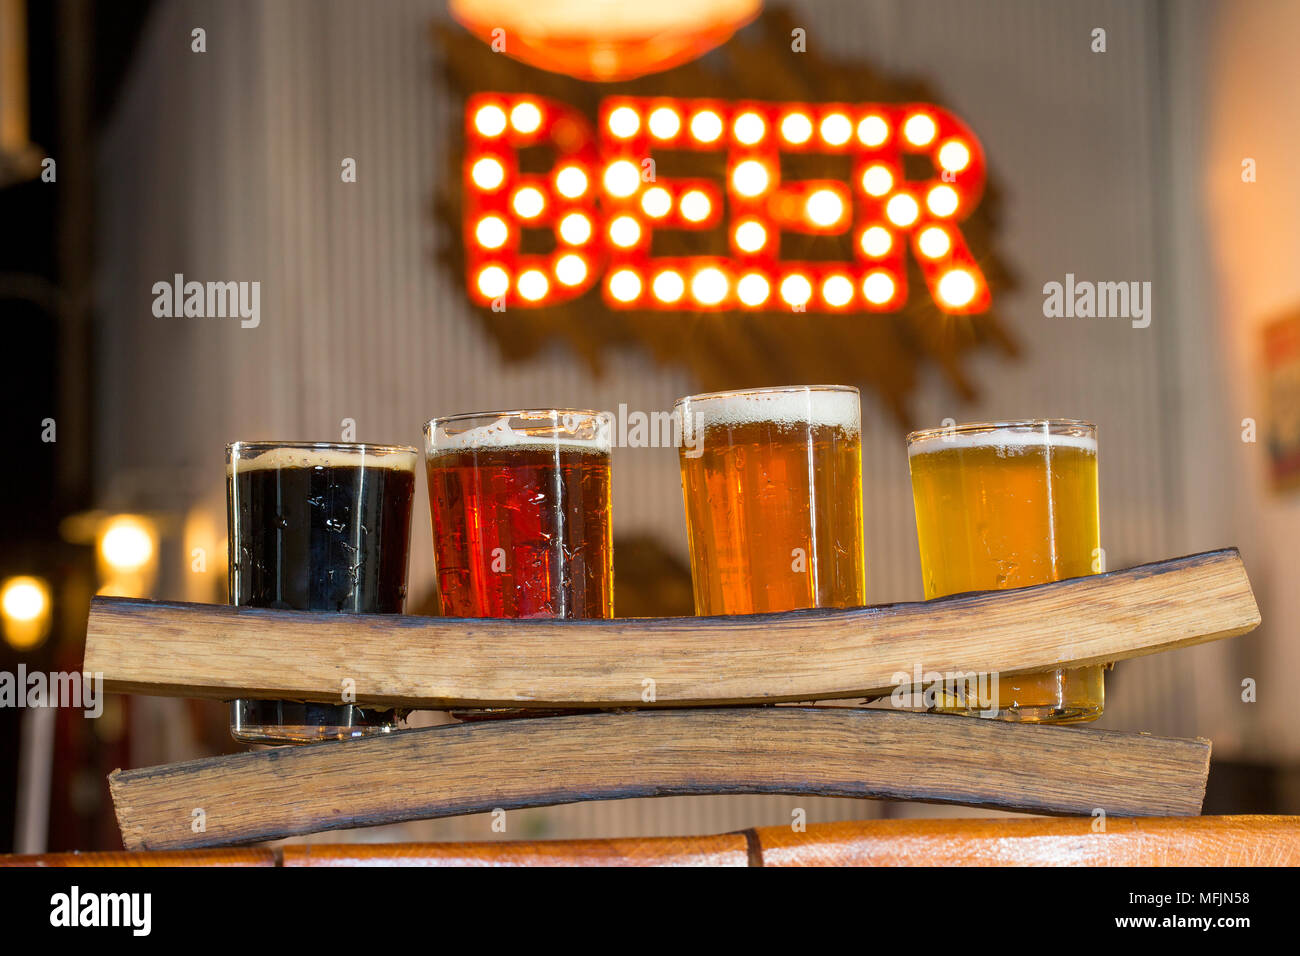 A sampler flight of beer at a local brewery. - Stock Image